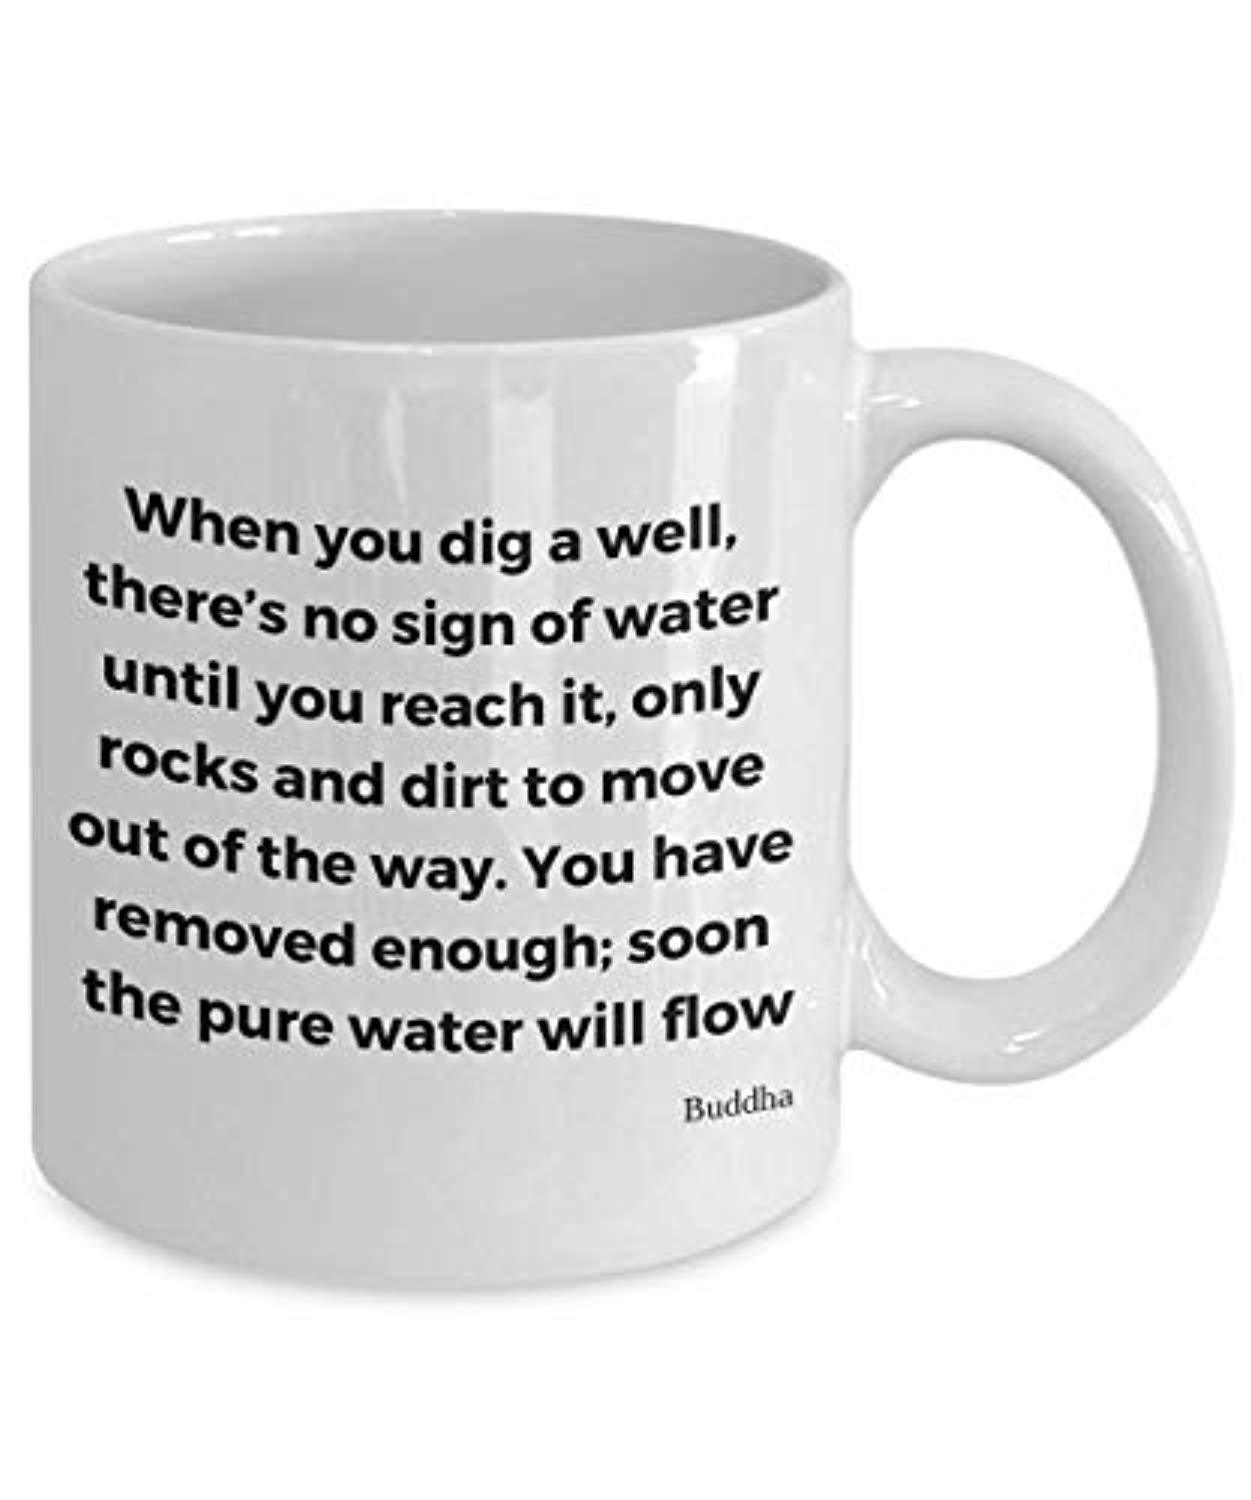 When You Dig A Well mug